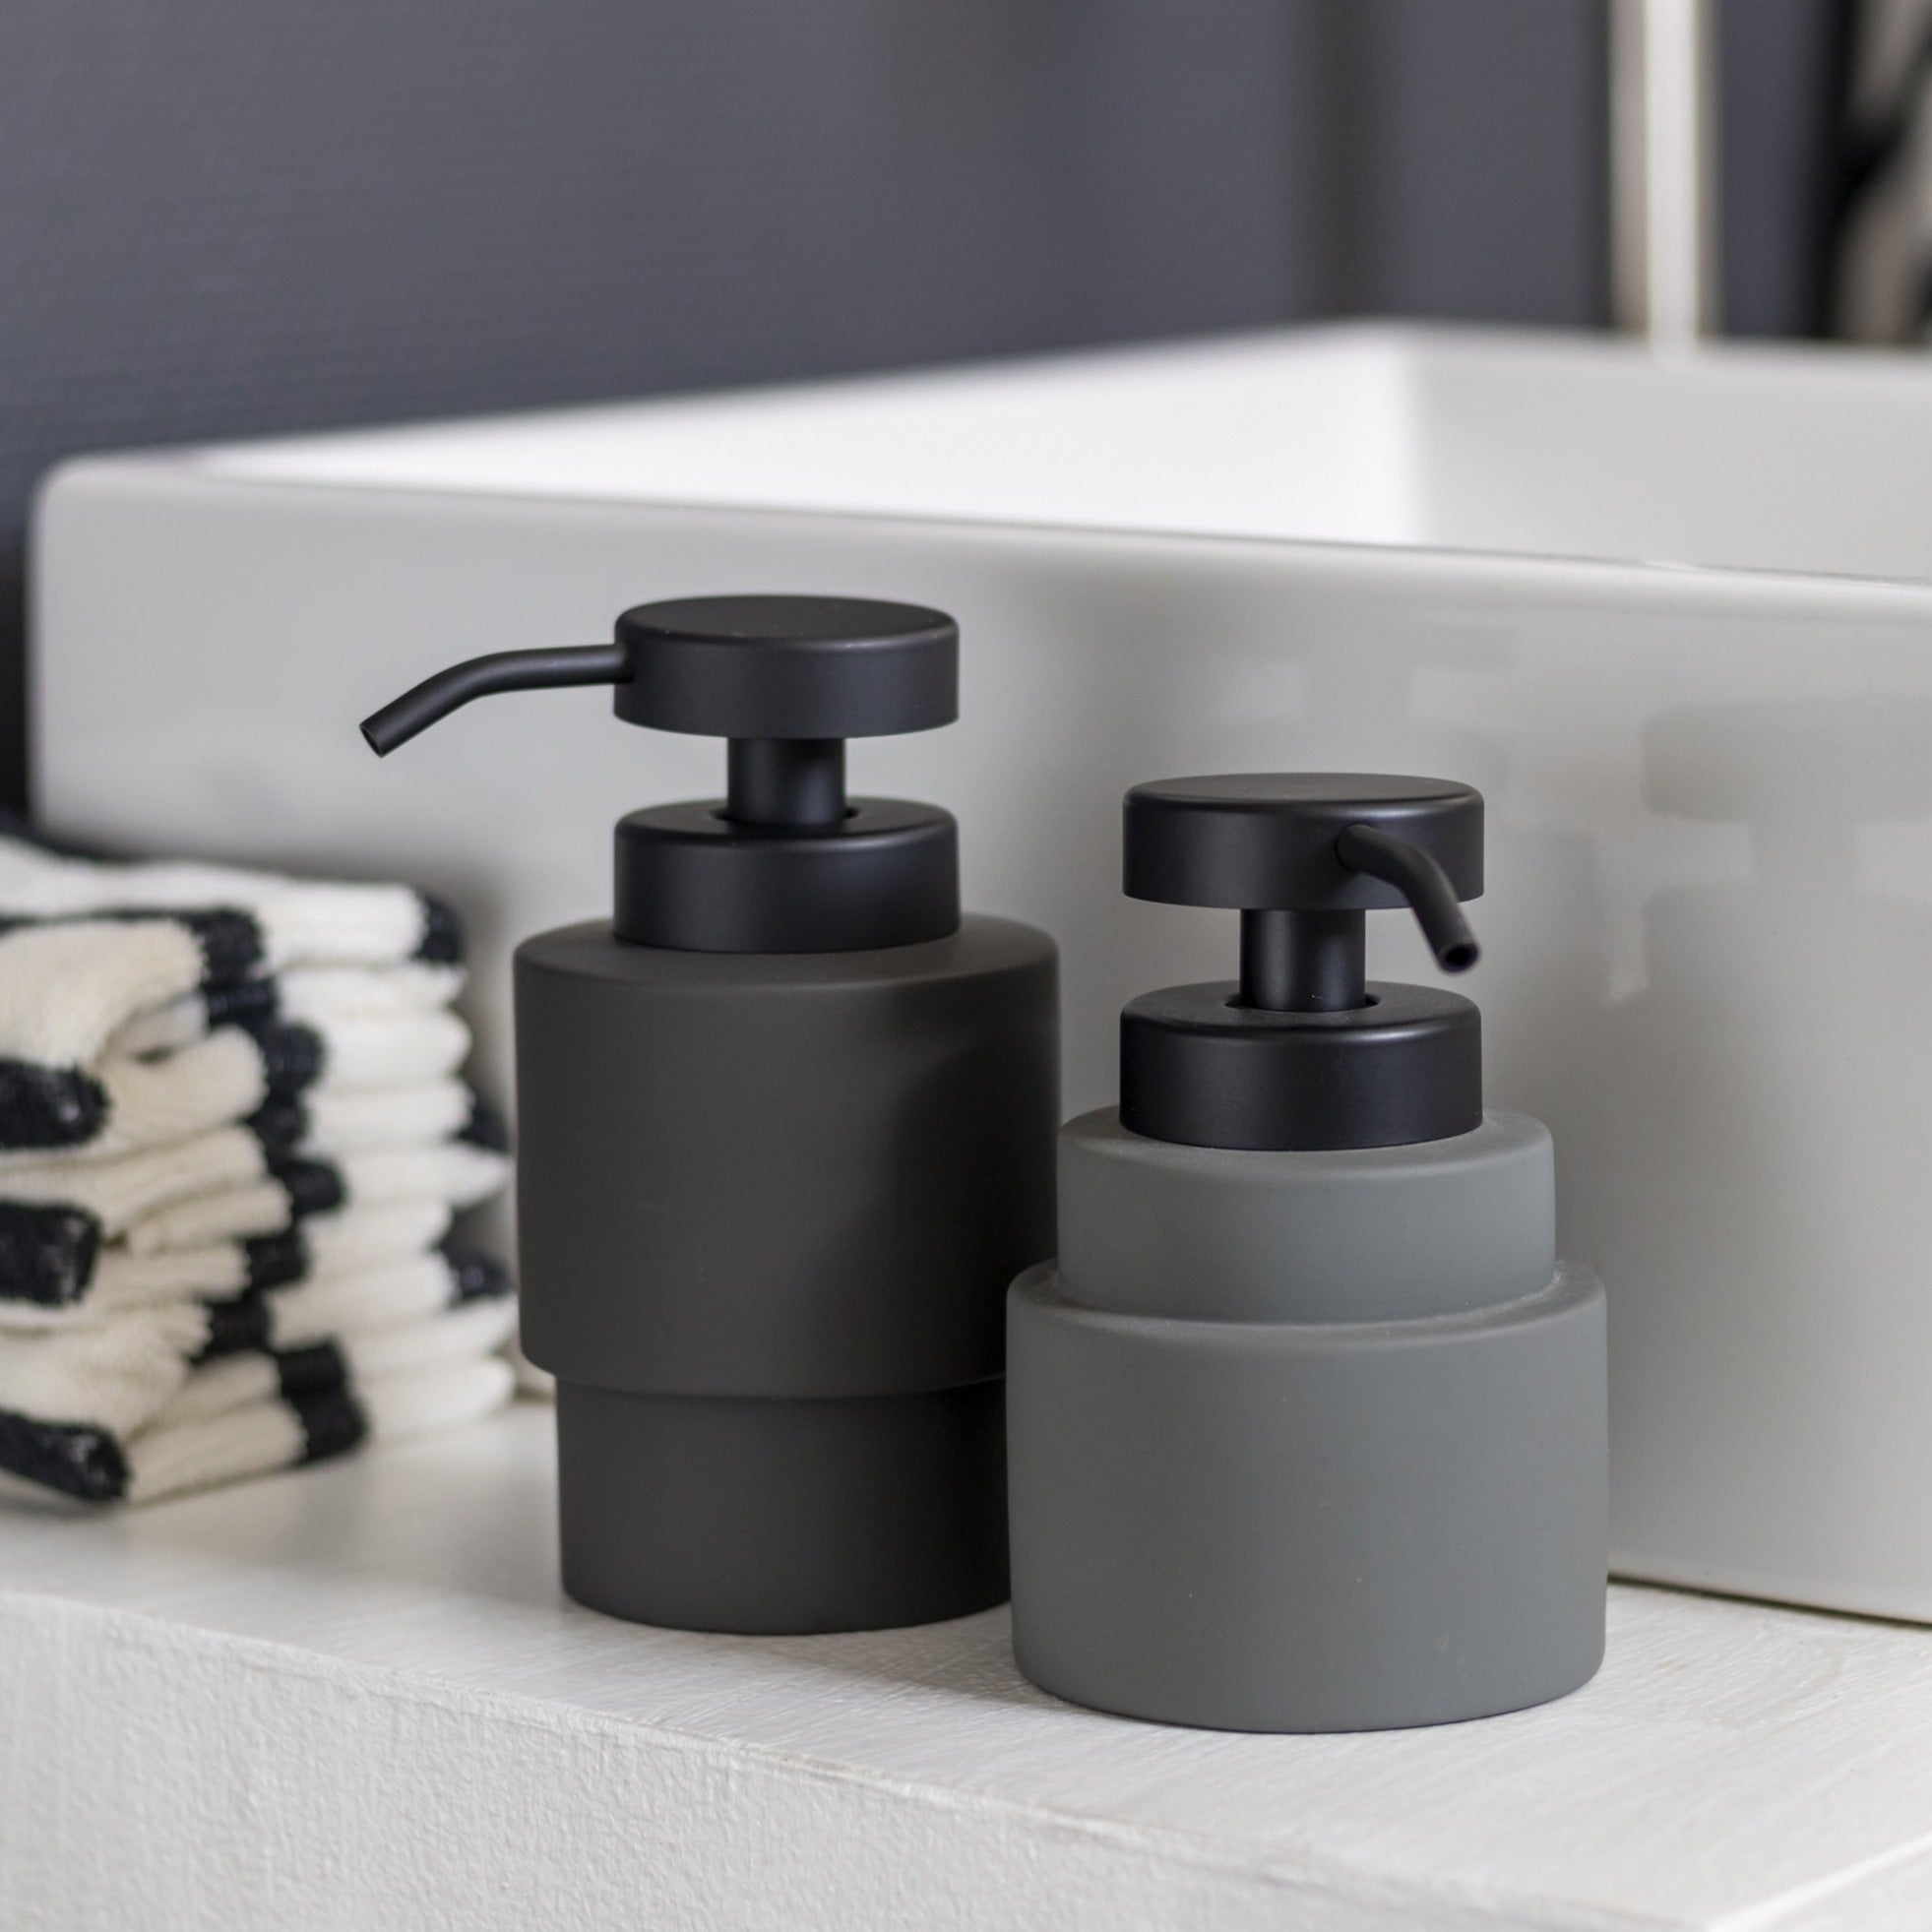 SHADES High Soap Dispenser- Grey